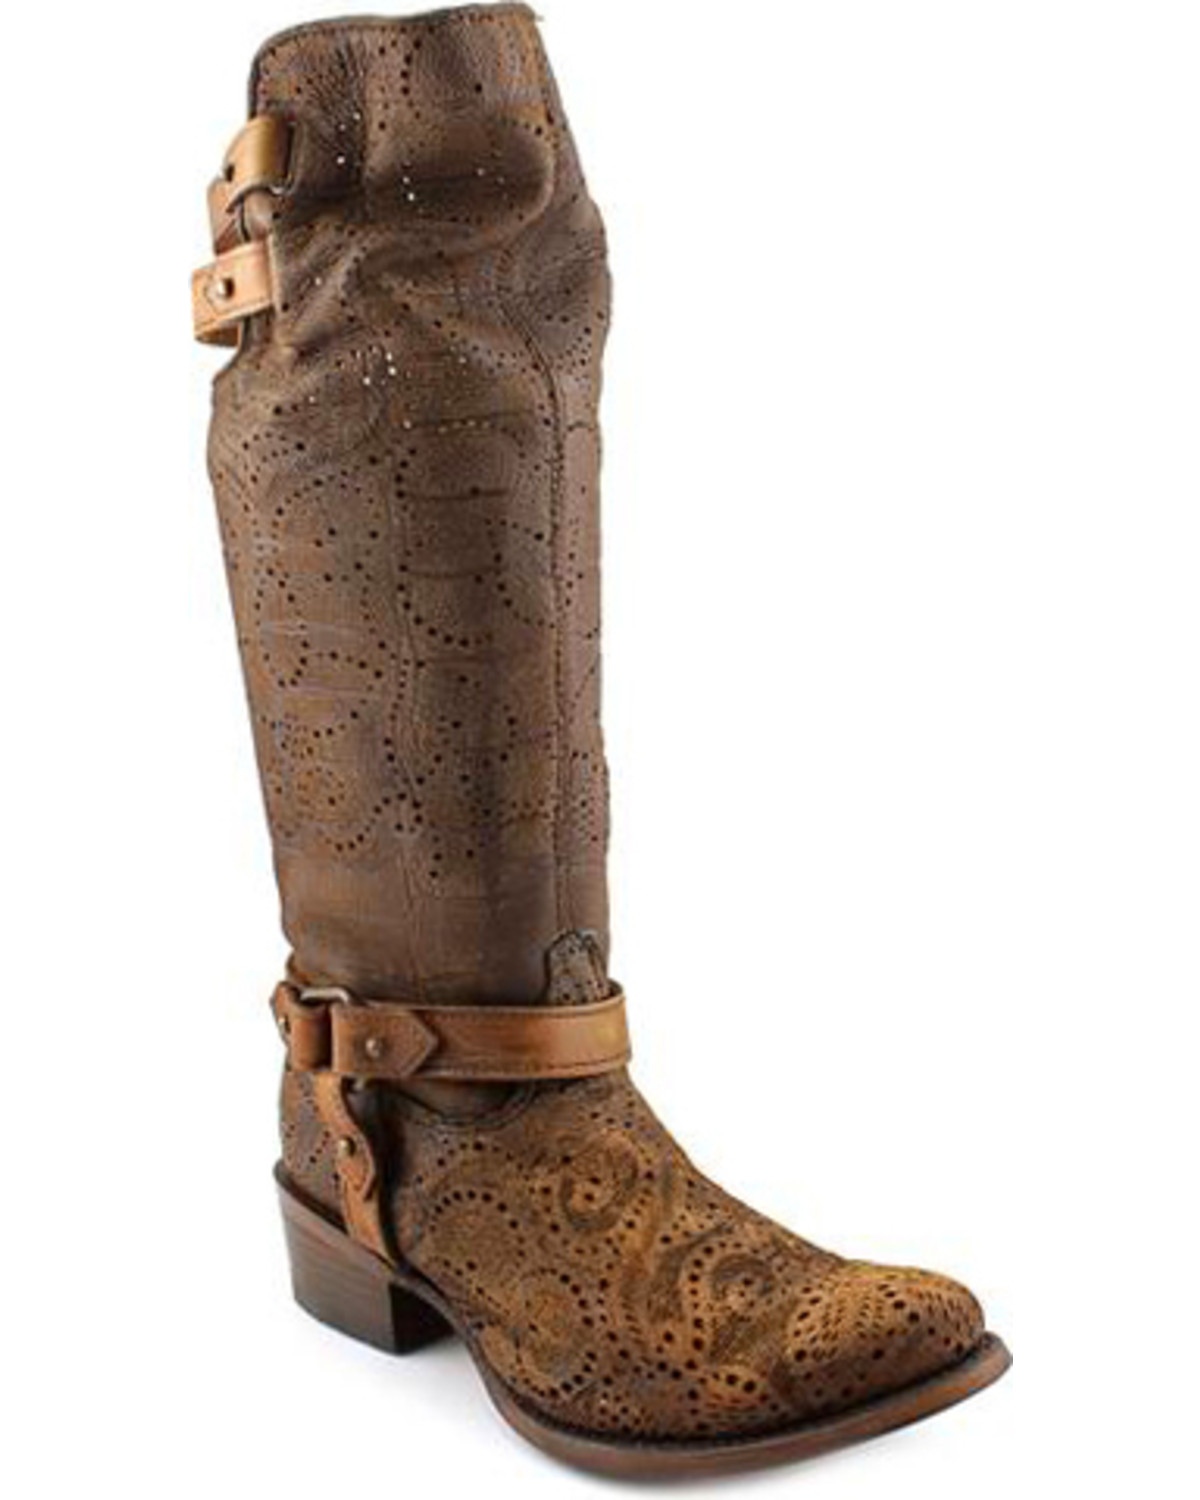 Corral Women's Chocolate Slouch Harness & Top Strap Cowgirl Boots ...